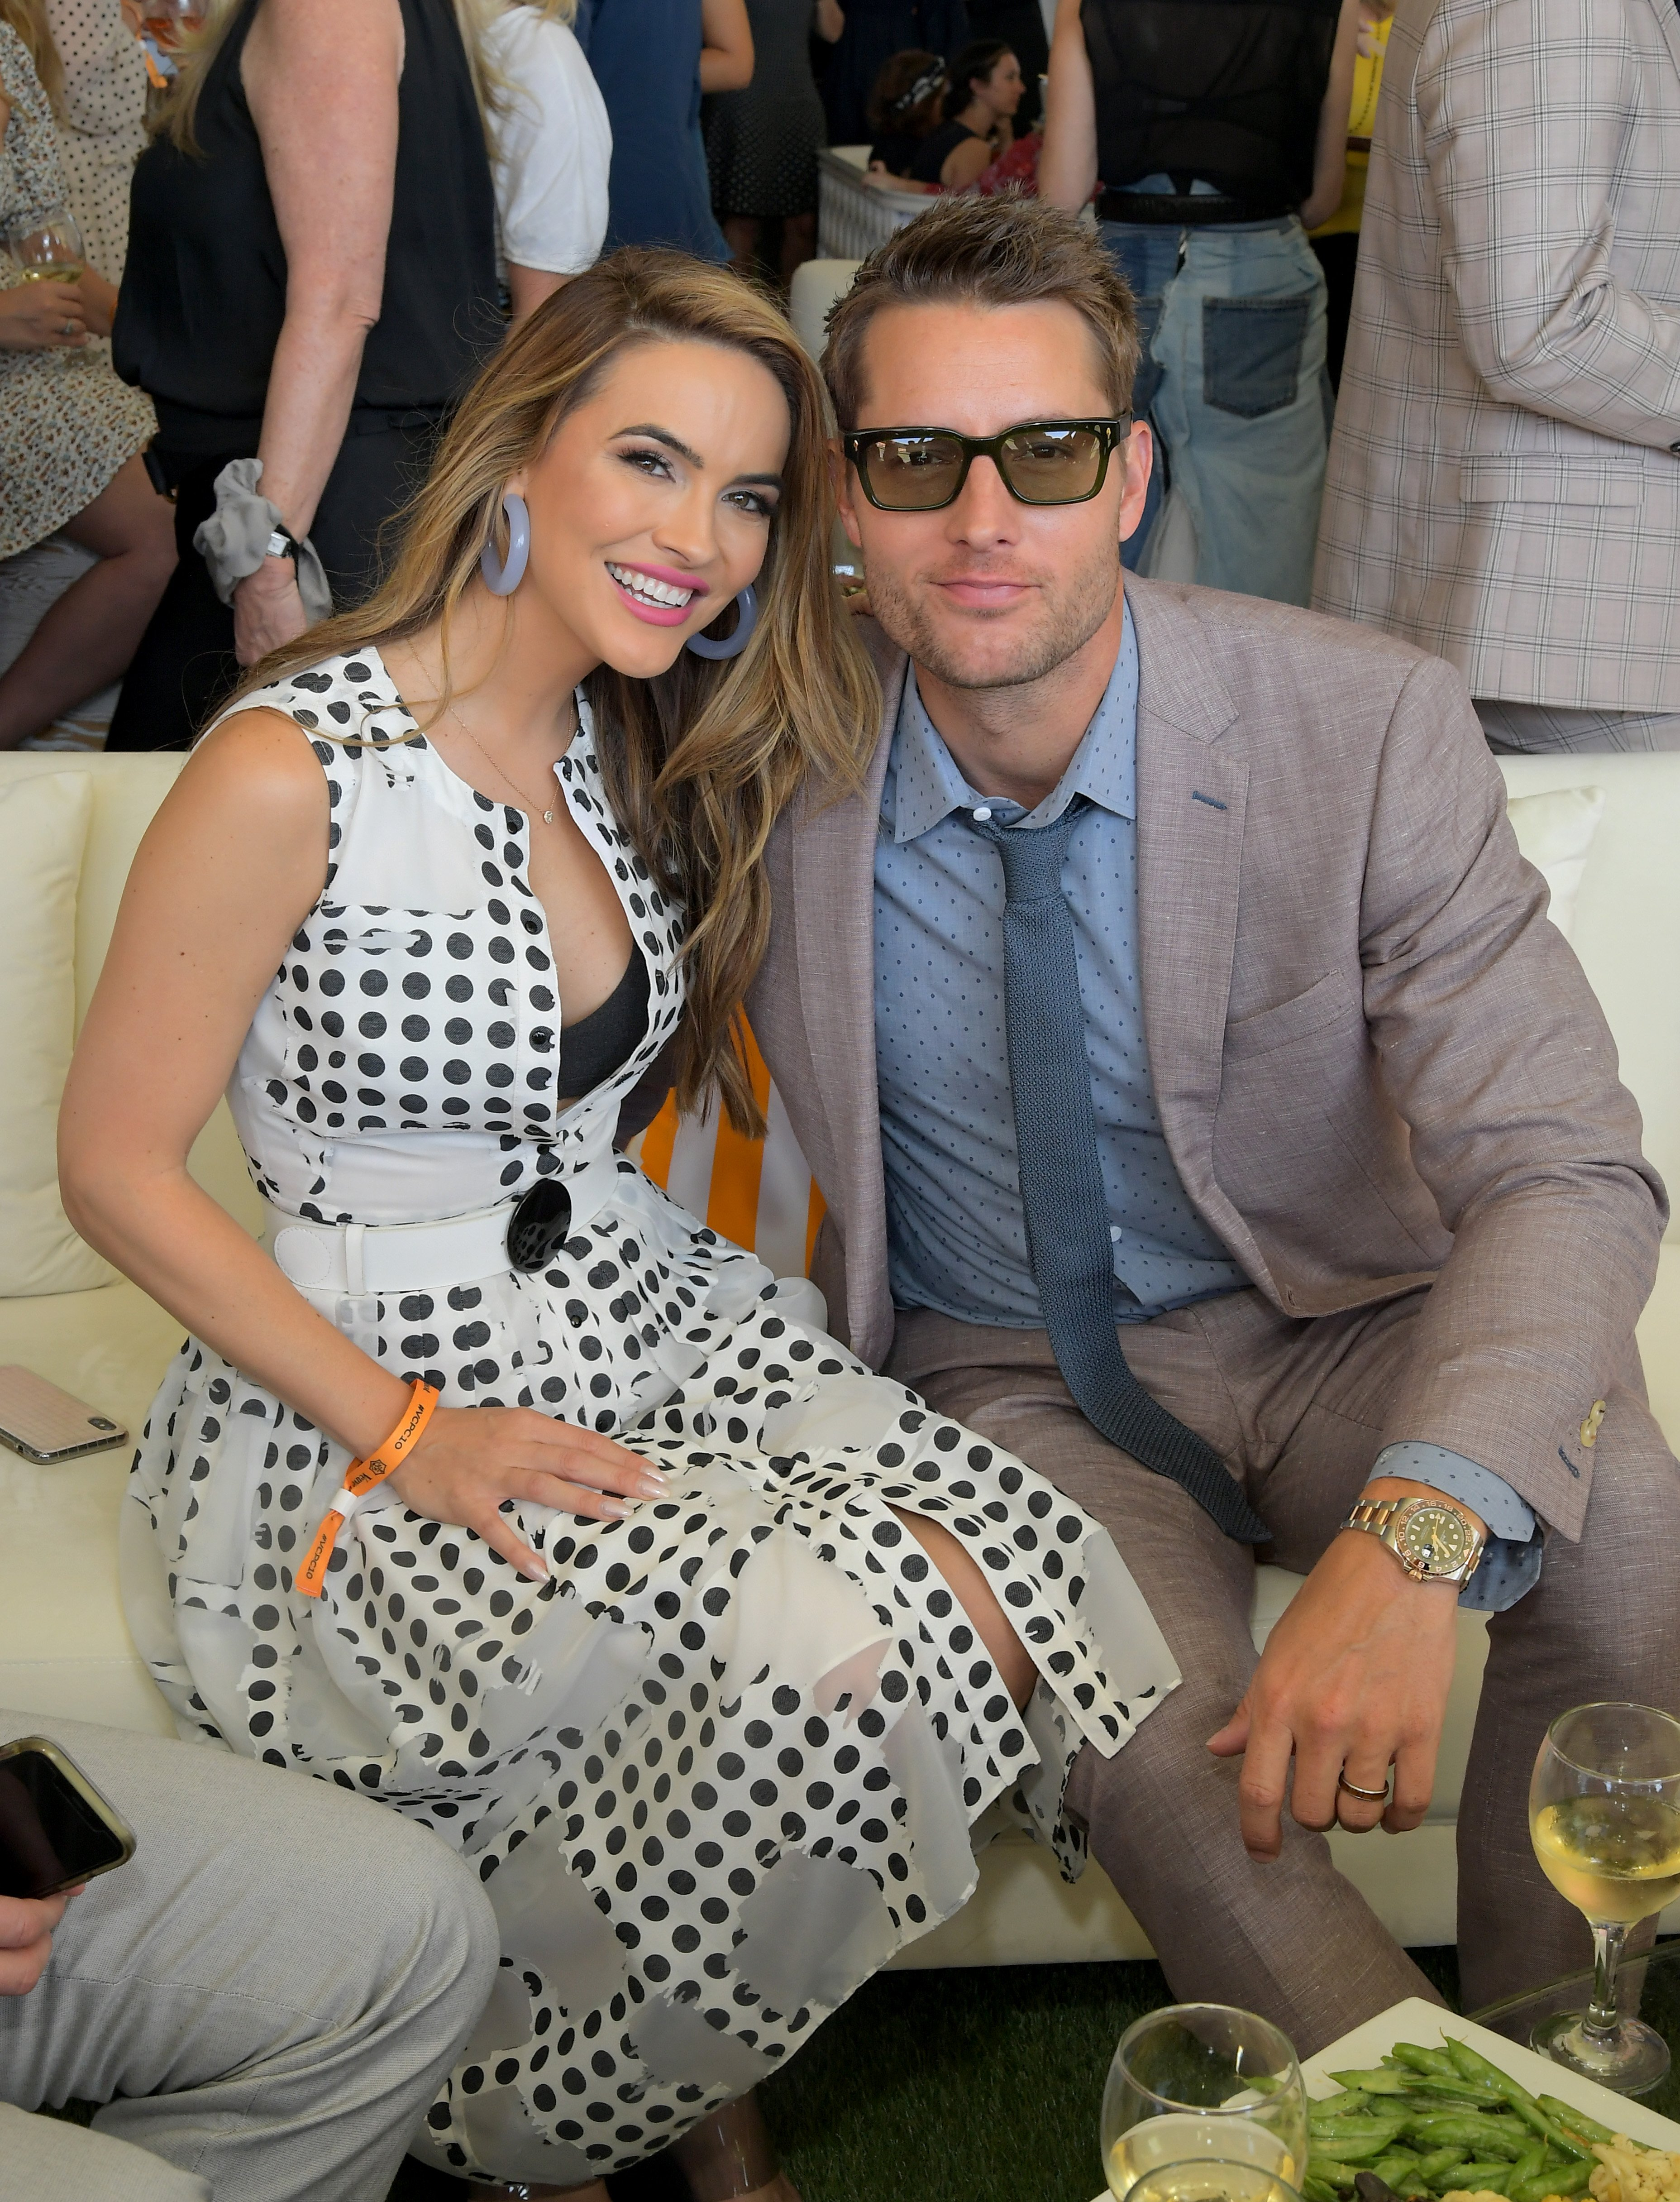 Chrishell Stause and Justin Hartley attend the 10th Annual Veuve Clicquot Polo Classic Los Angeles on October 05, 2019, in Pacific Palisades, California.   Source: Getty Images.